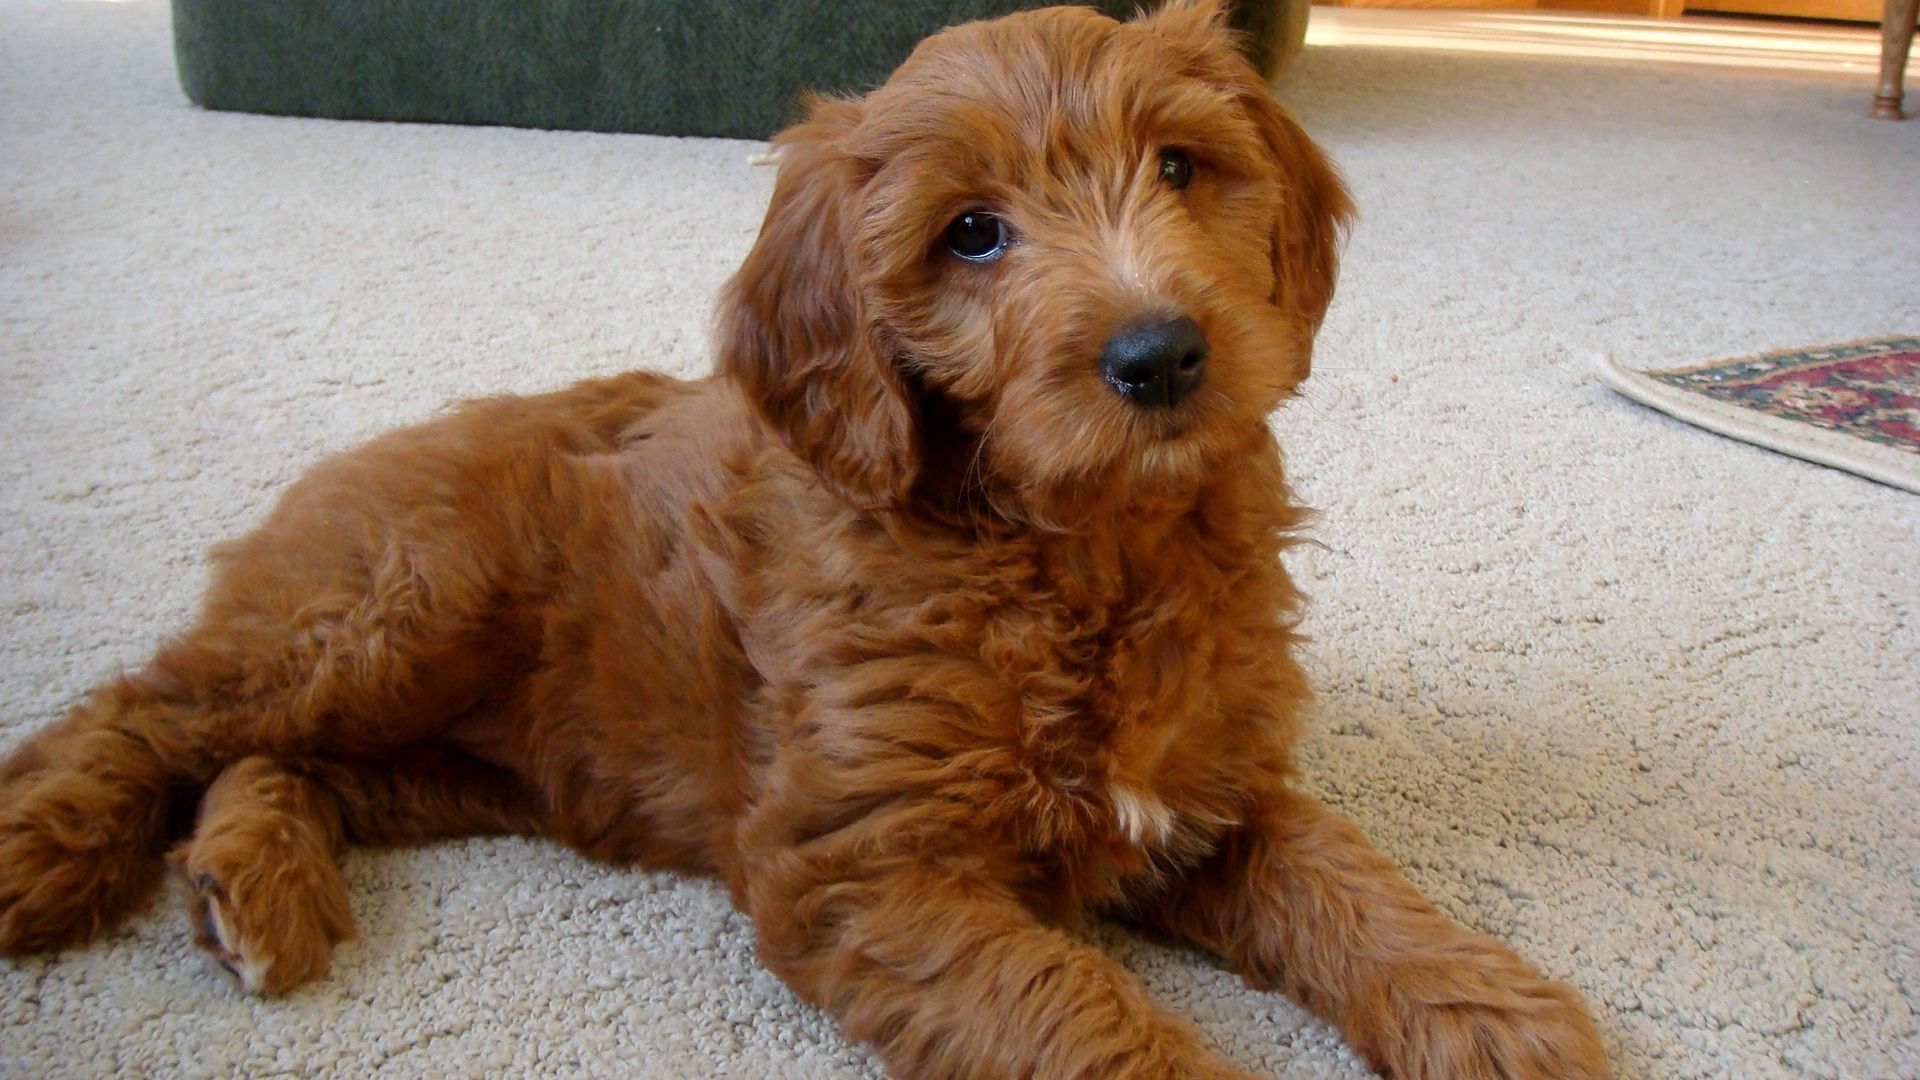 Goldendoodle Golden Retriever Poodle Mix Golden Doodle Hund